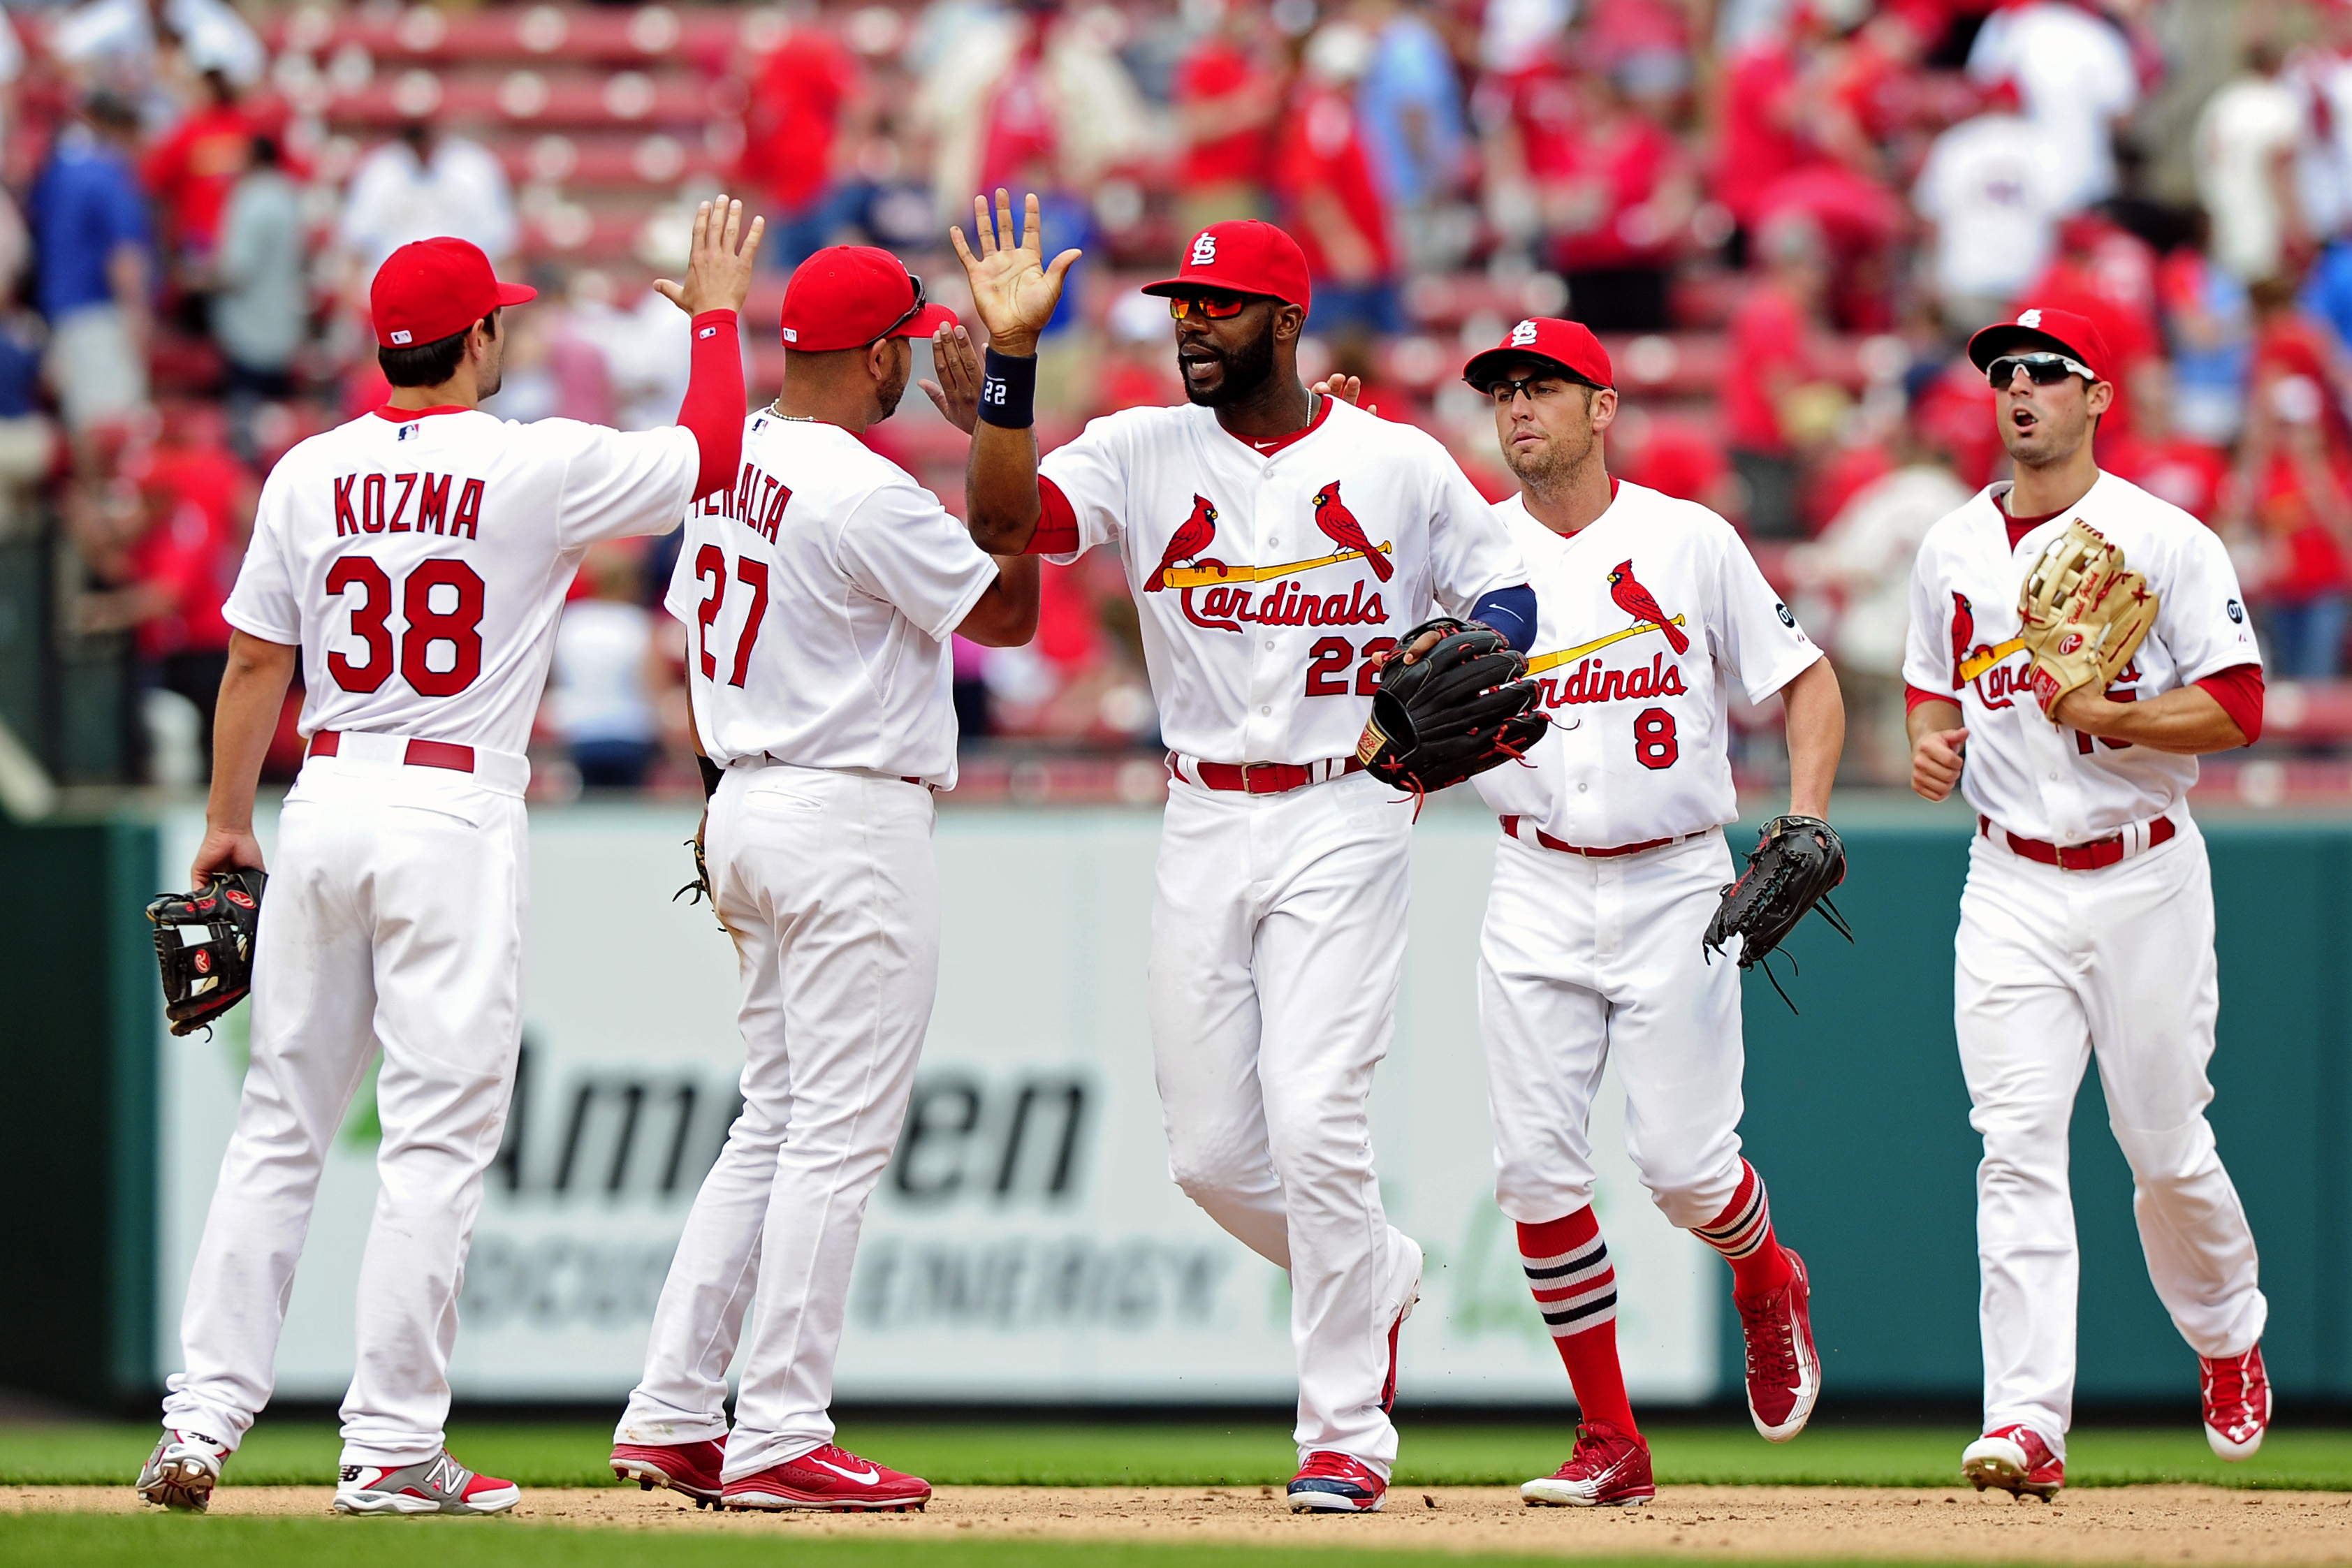 a5d17dad8 Cardinal Sins  How Should MLB Handle the St. Louis Hacking Scandal ...